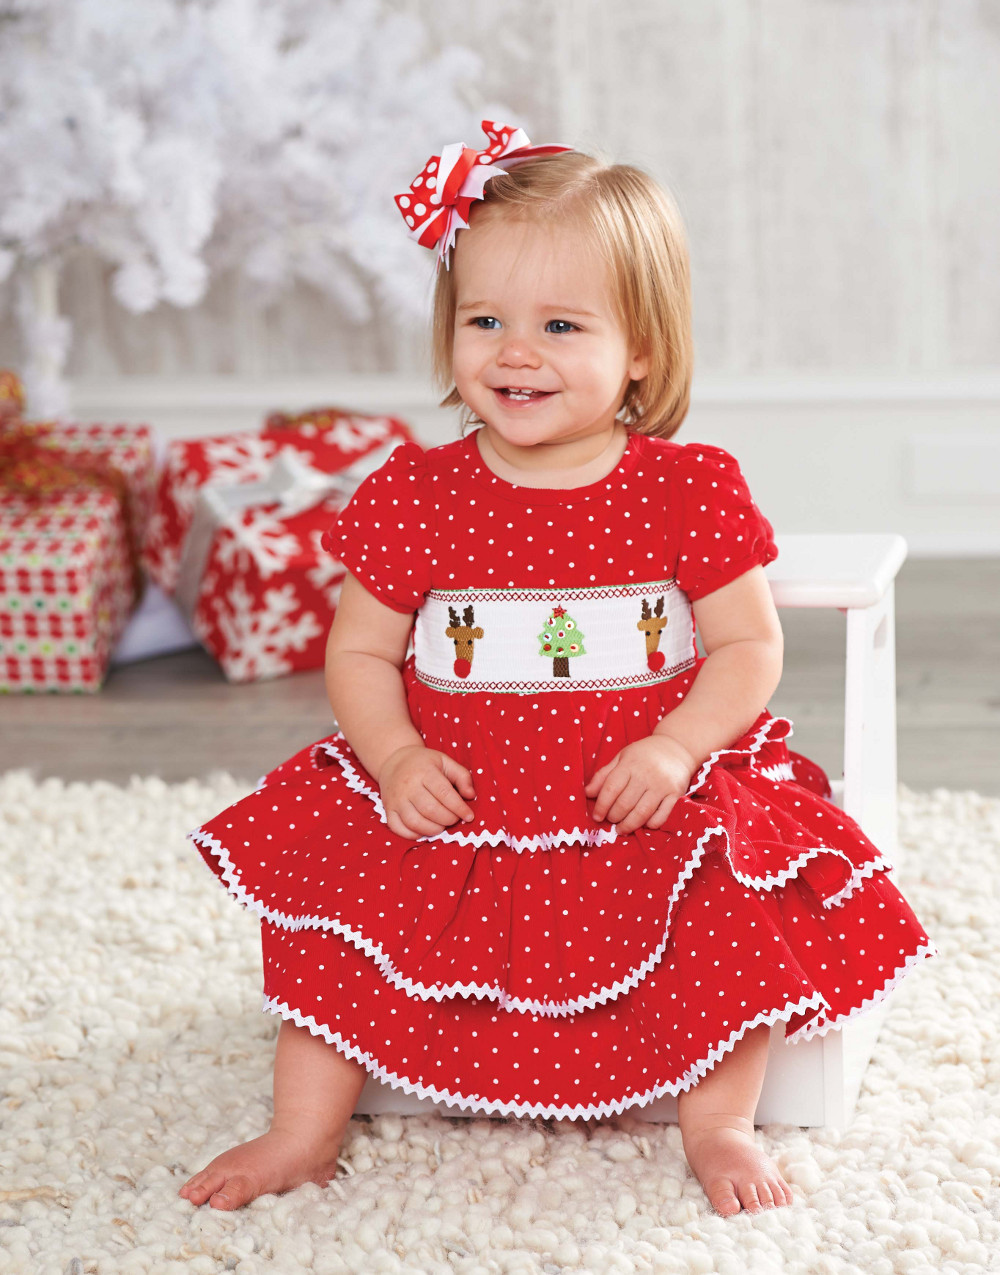 Mud Pie Holiday Dress: Red Girls Infant or Toddler Corduroy Smocked Chistmas Dress 4T at Sears.com